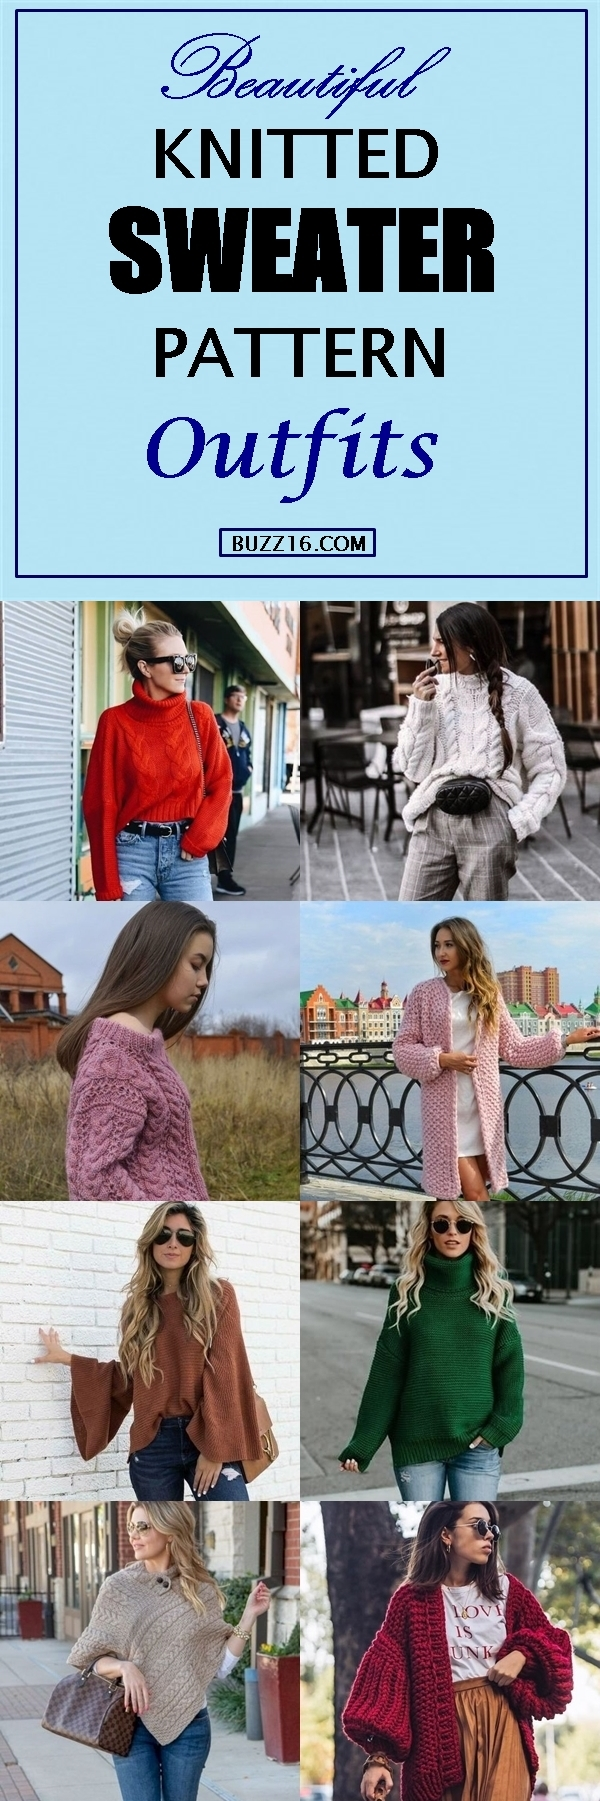 40 Beautiful Knitted Sweater Pattern Outfits 2019